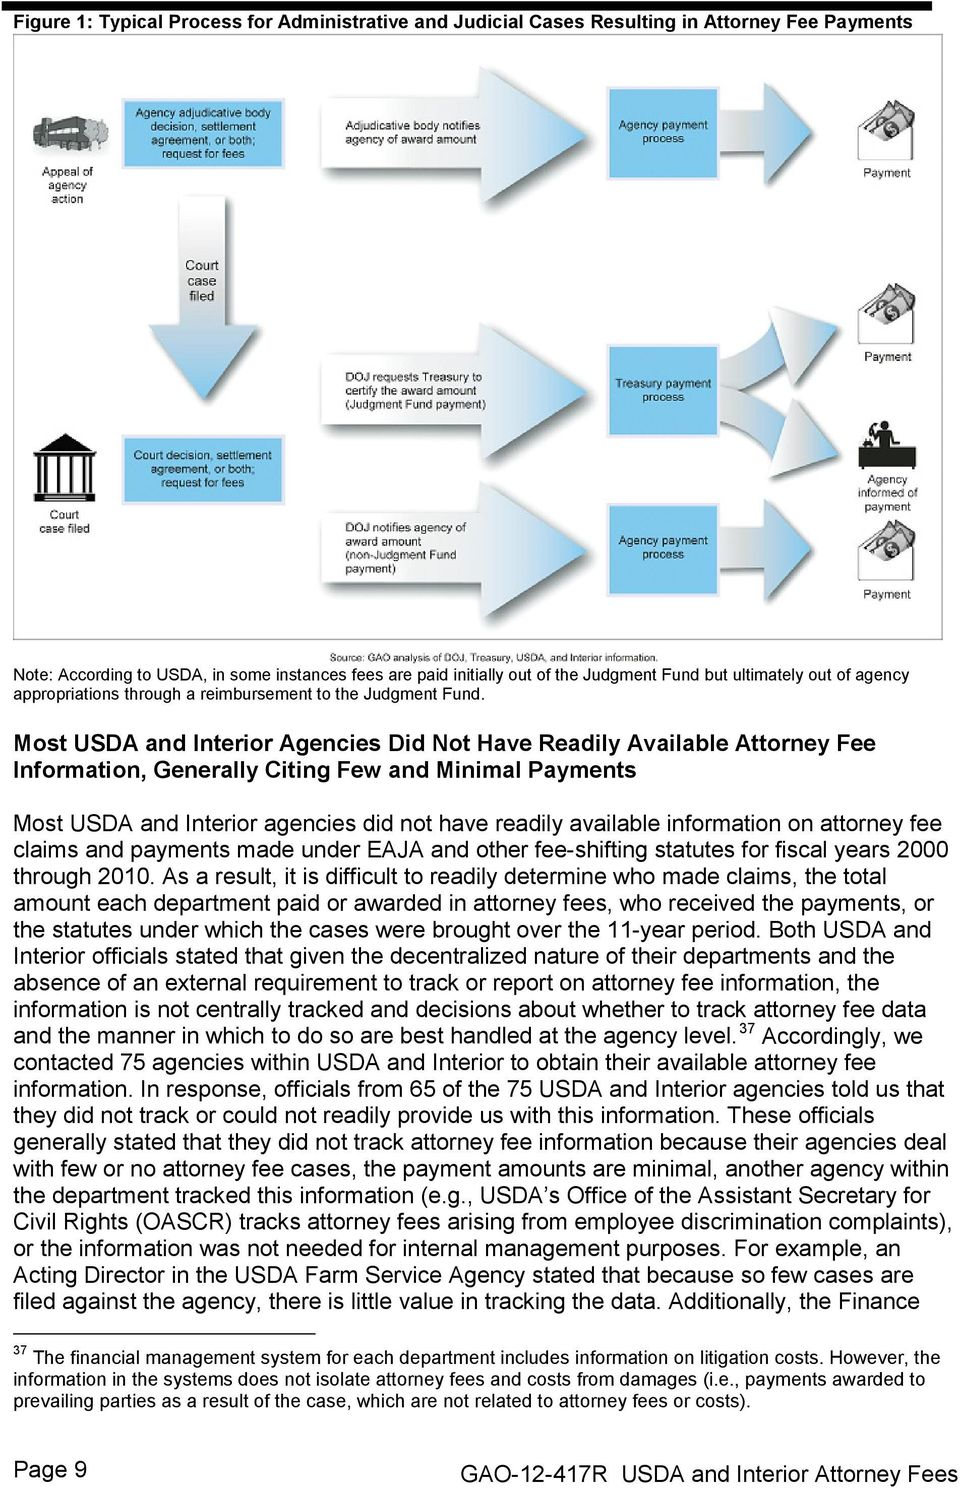 Most USDA and Interior Agencies Did Not Have Readily Available Attorney Fee Information, Generally Citing Few and Minimal Payments Most USDA and Interior agencies did not have readily available